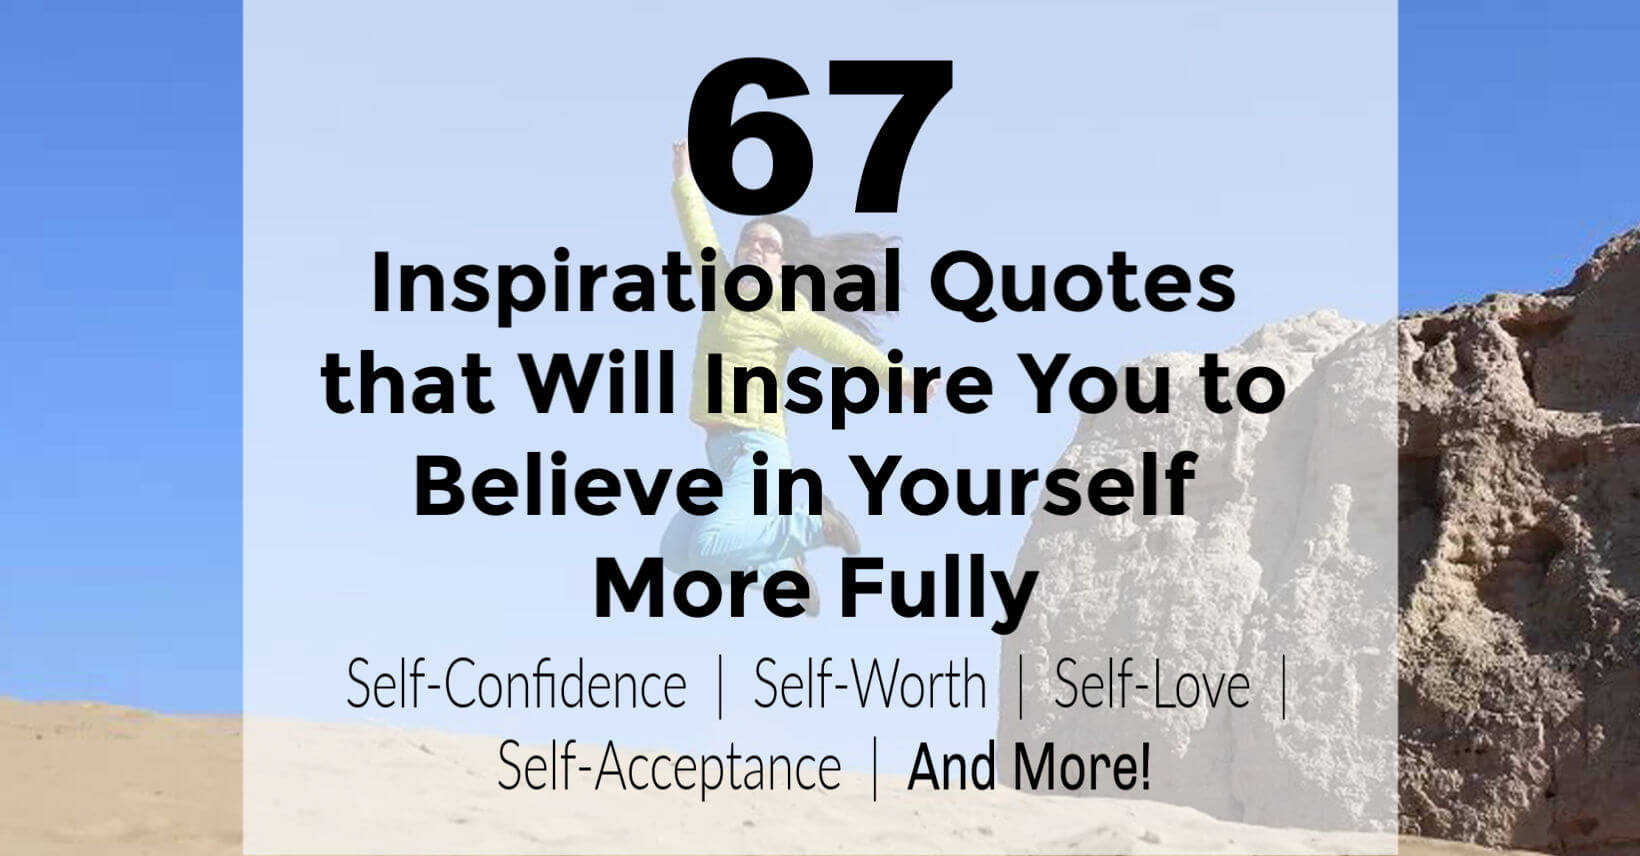 67 quotes to help you believe in yourself, have more self-confidence, self-worth and self-love in your life. Very inspiring!